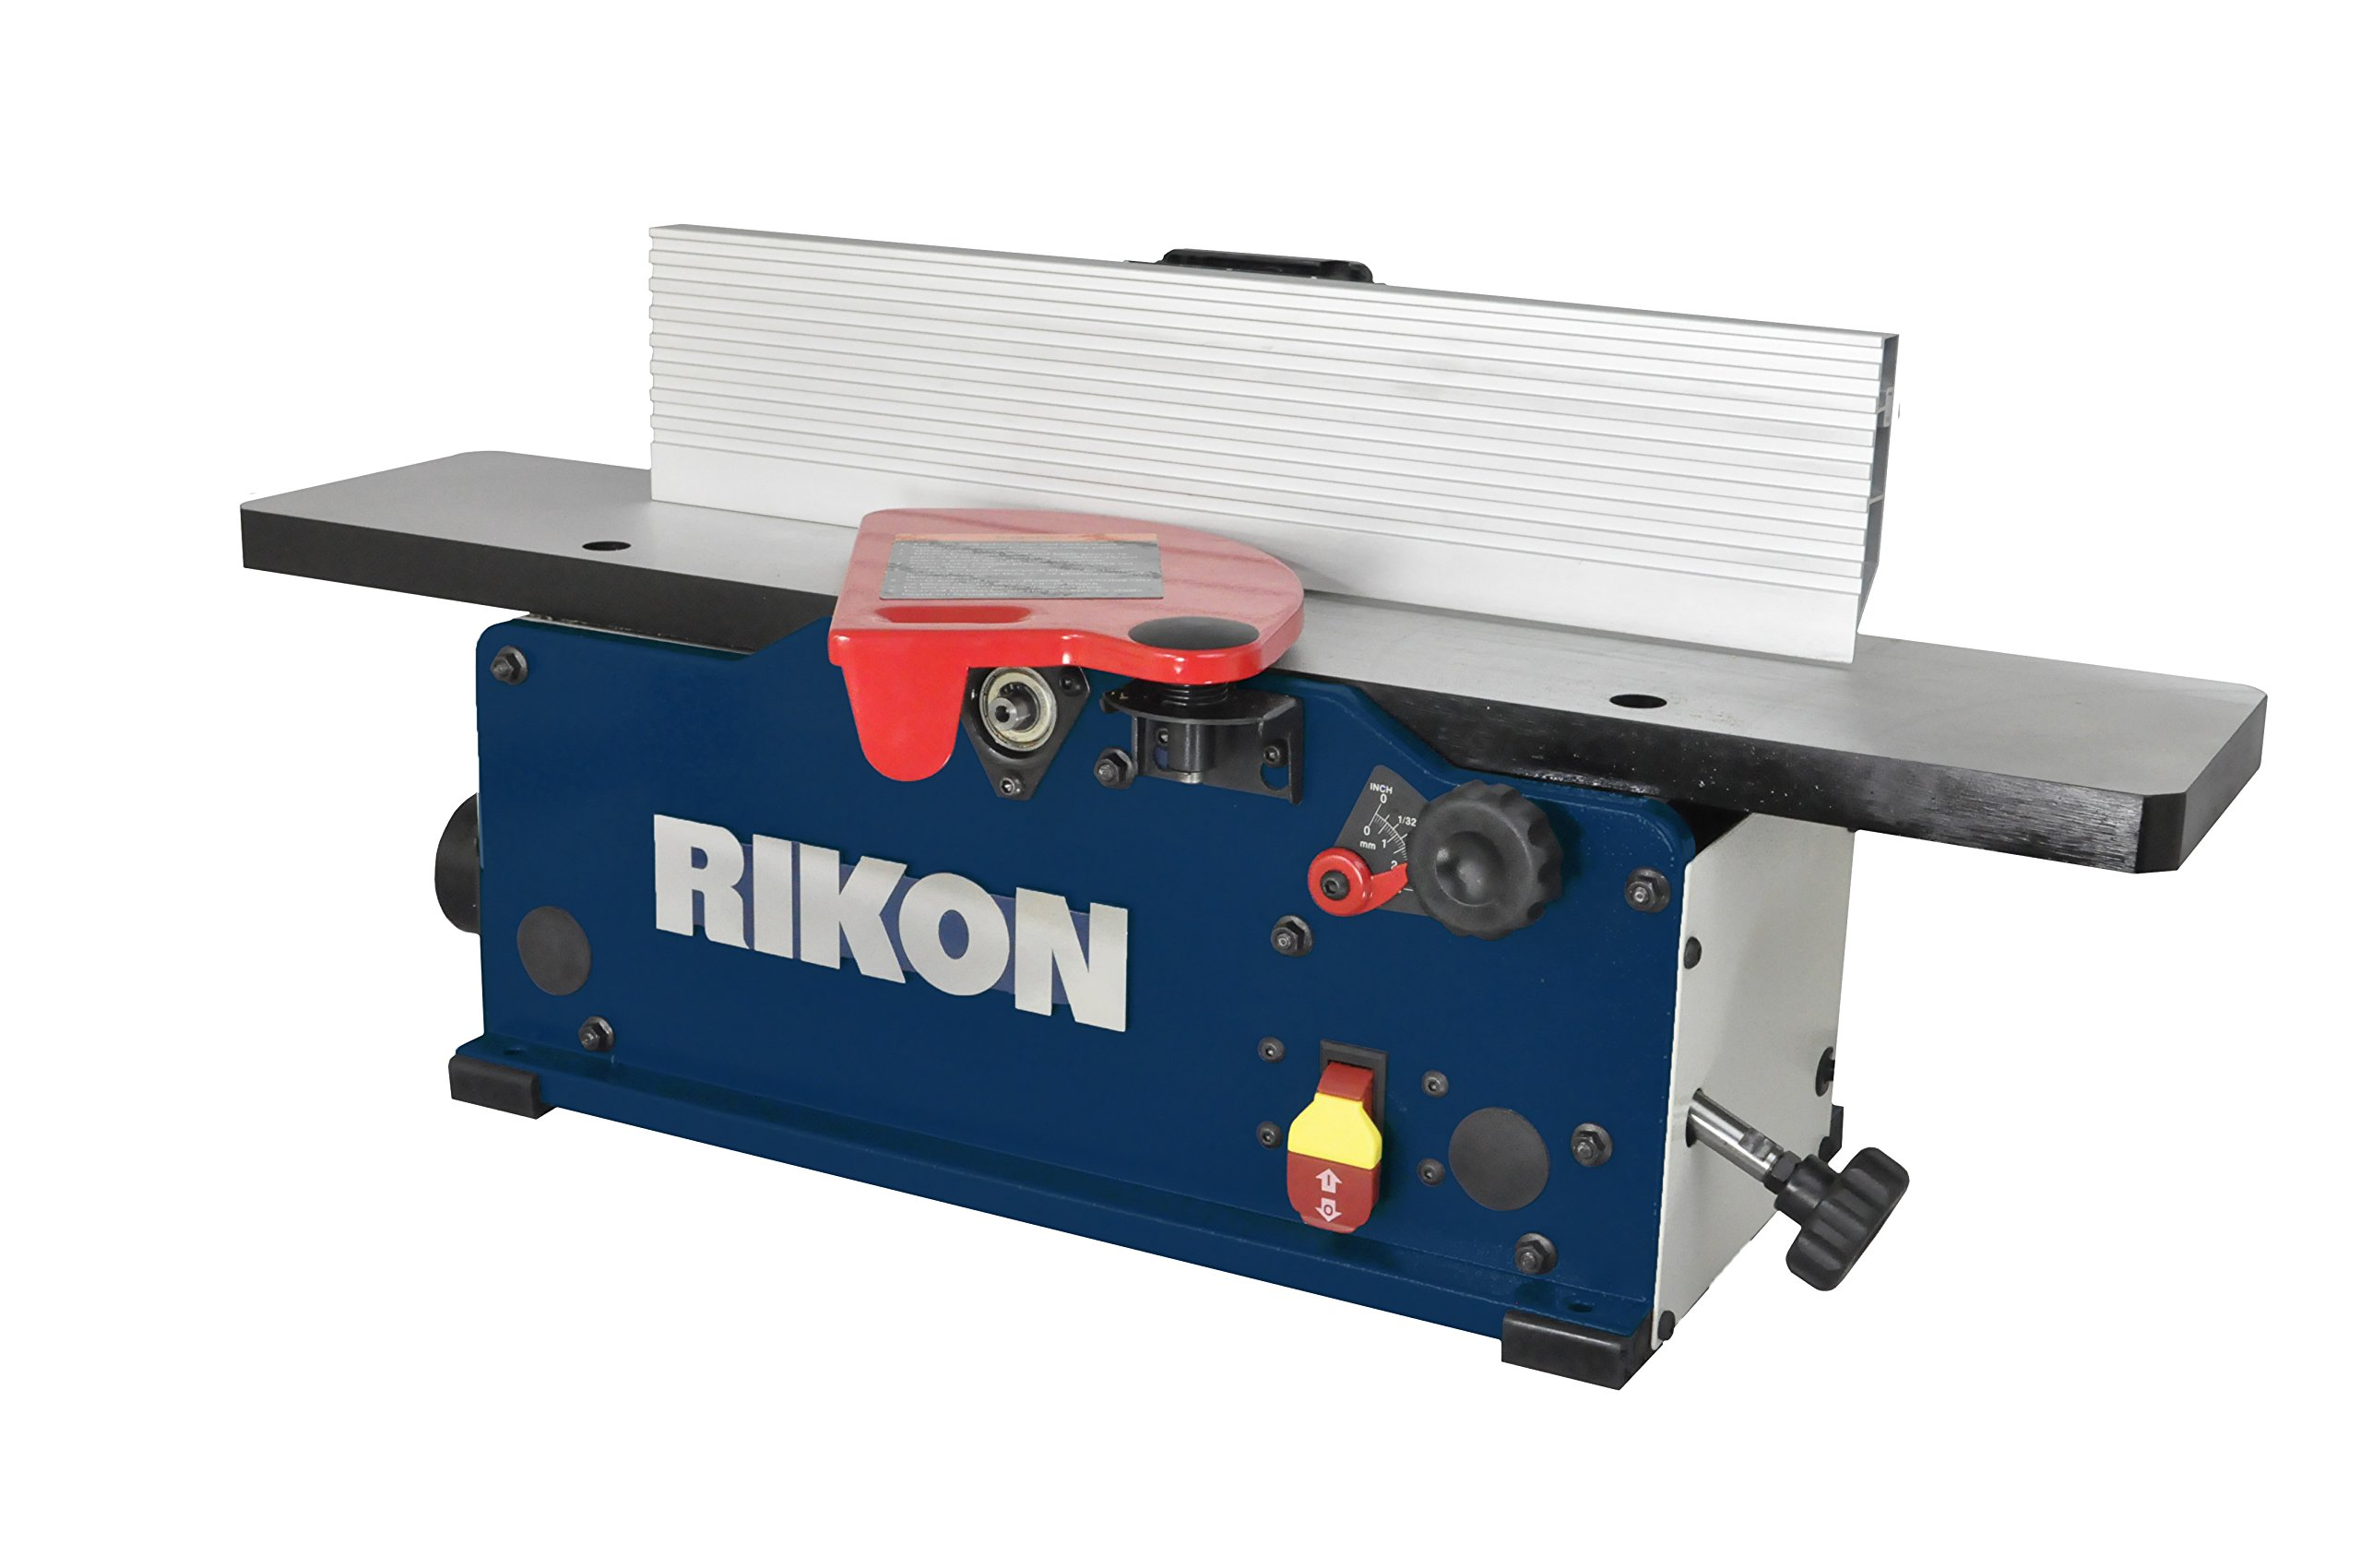 RIKON Power Tools 20-600H 6'' Benchtop Jointer with Helical Cutter head